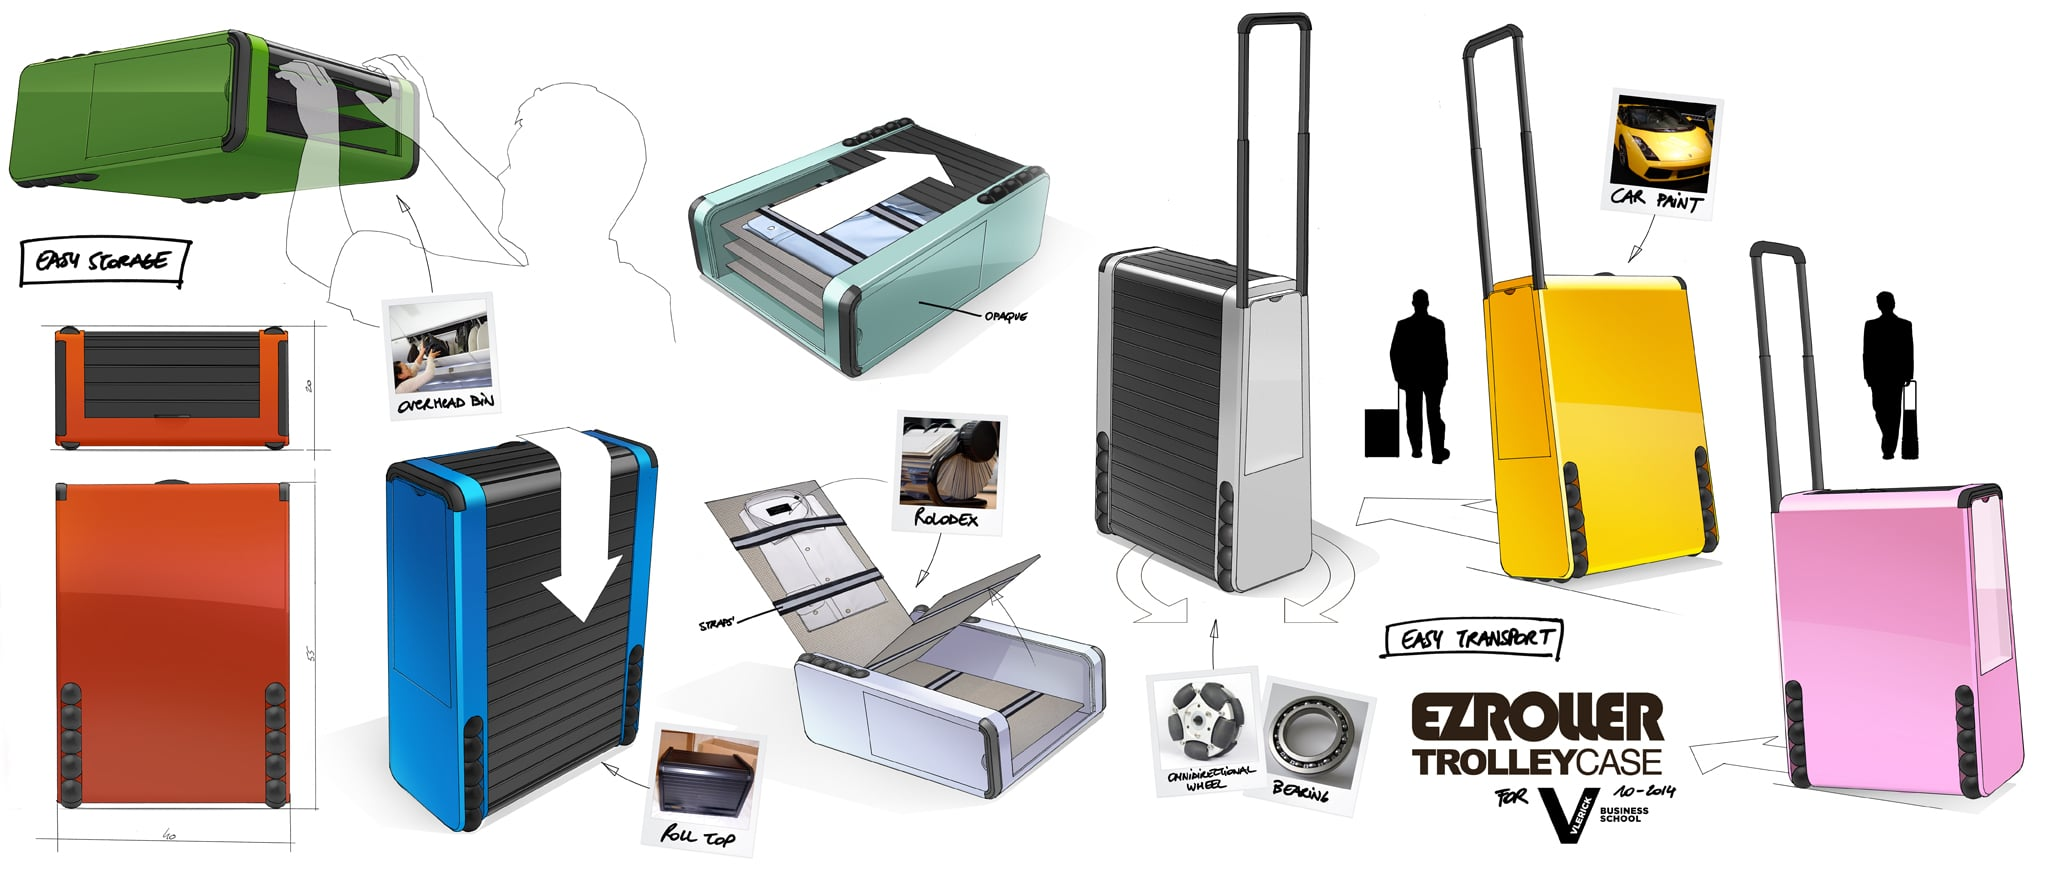 Creax-product-innovation-of-a-trolley